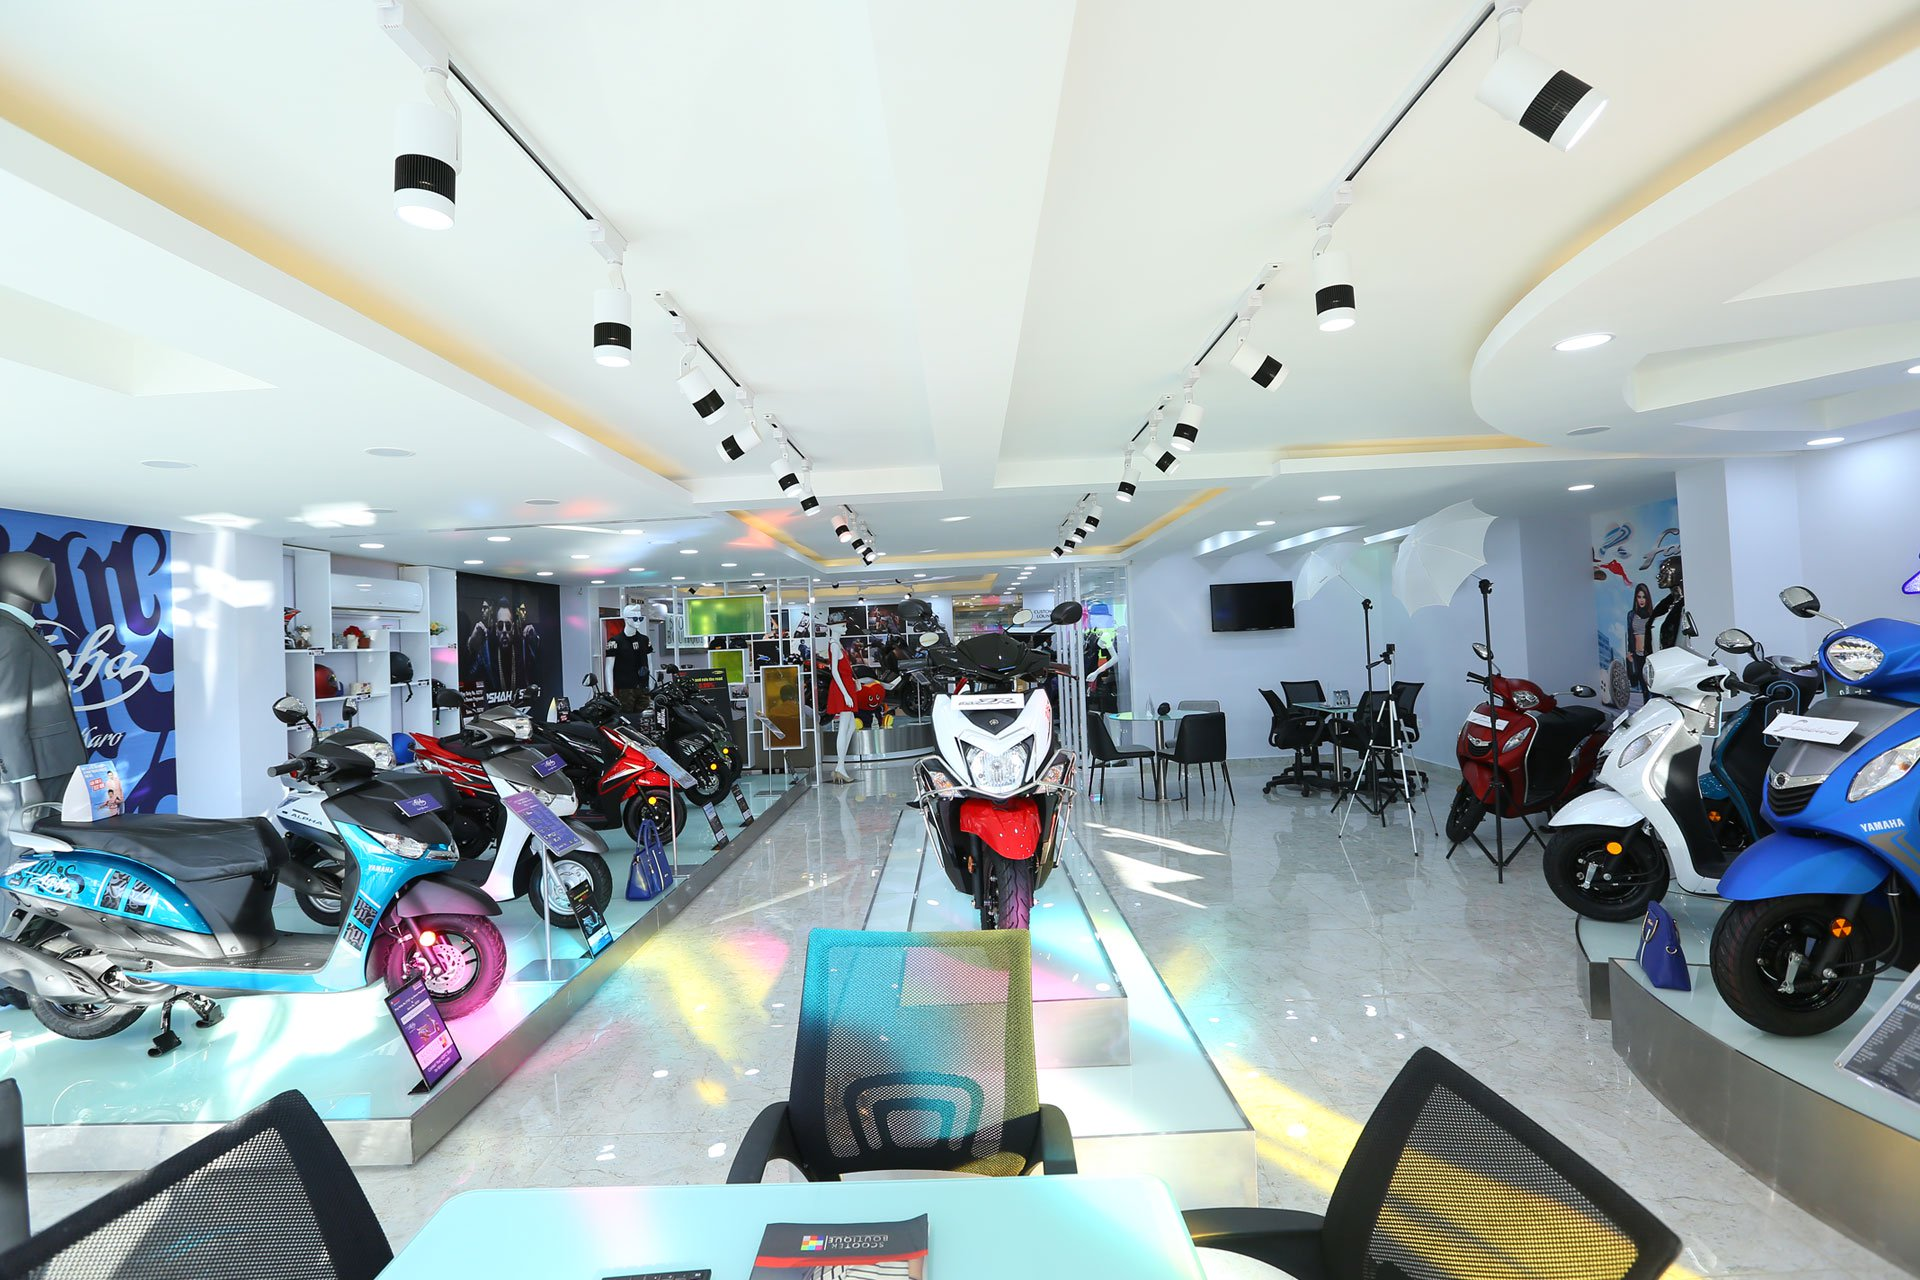 Scooter display facility at the Yamaha Scooter Boutique at Chennai